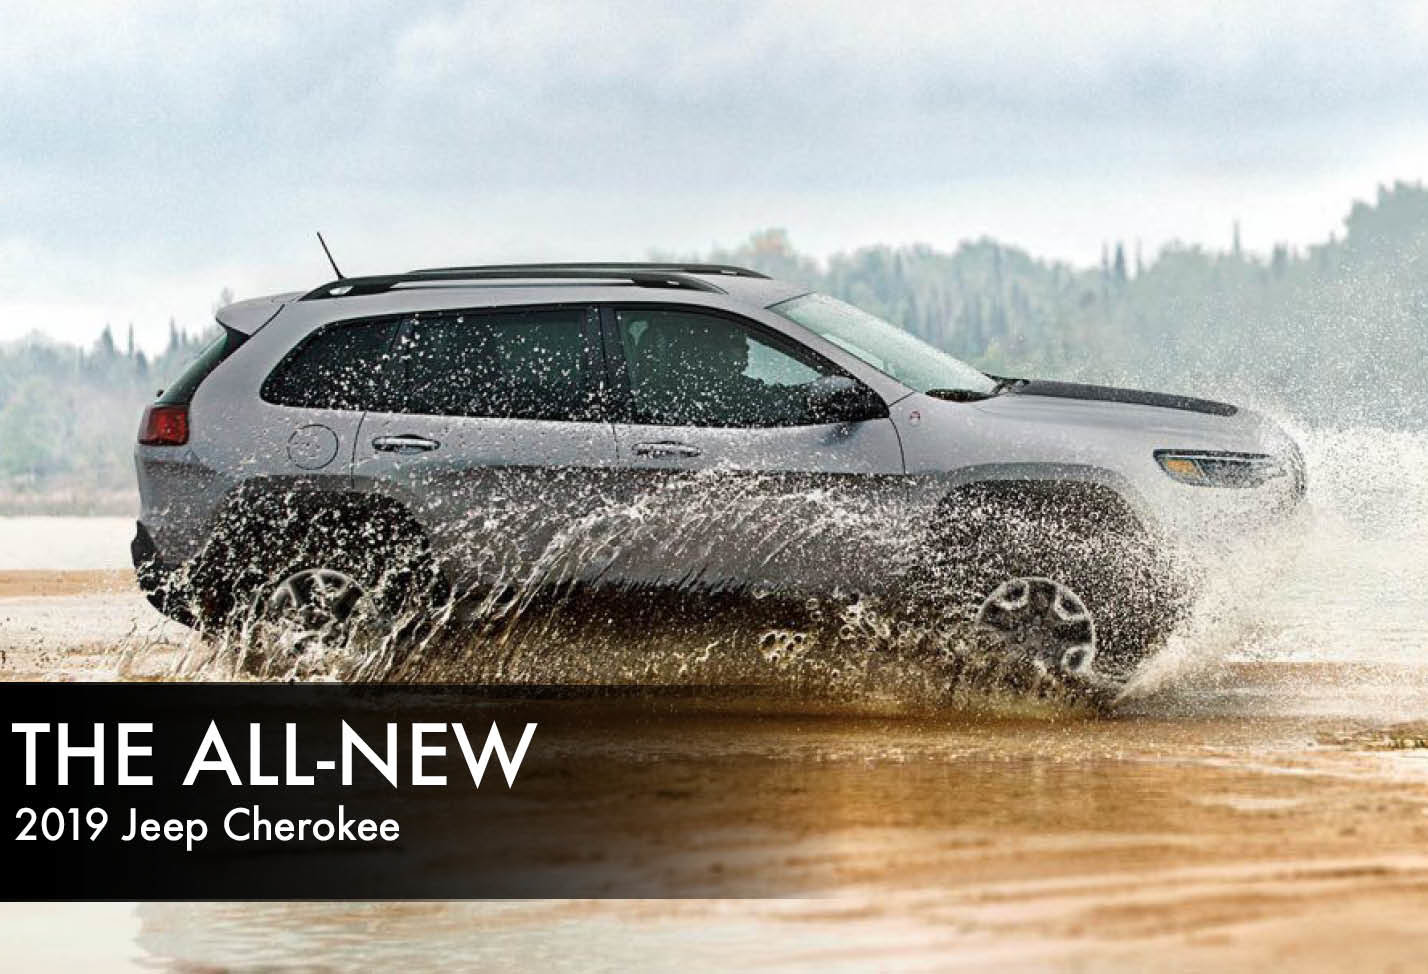 Get to know the all-new 2019 Jeep Cherokee here.